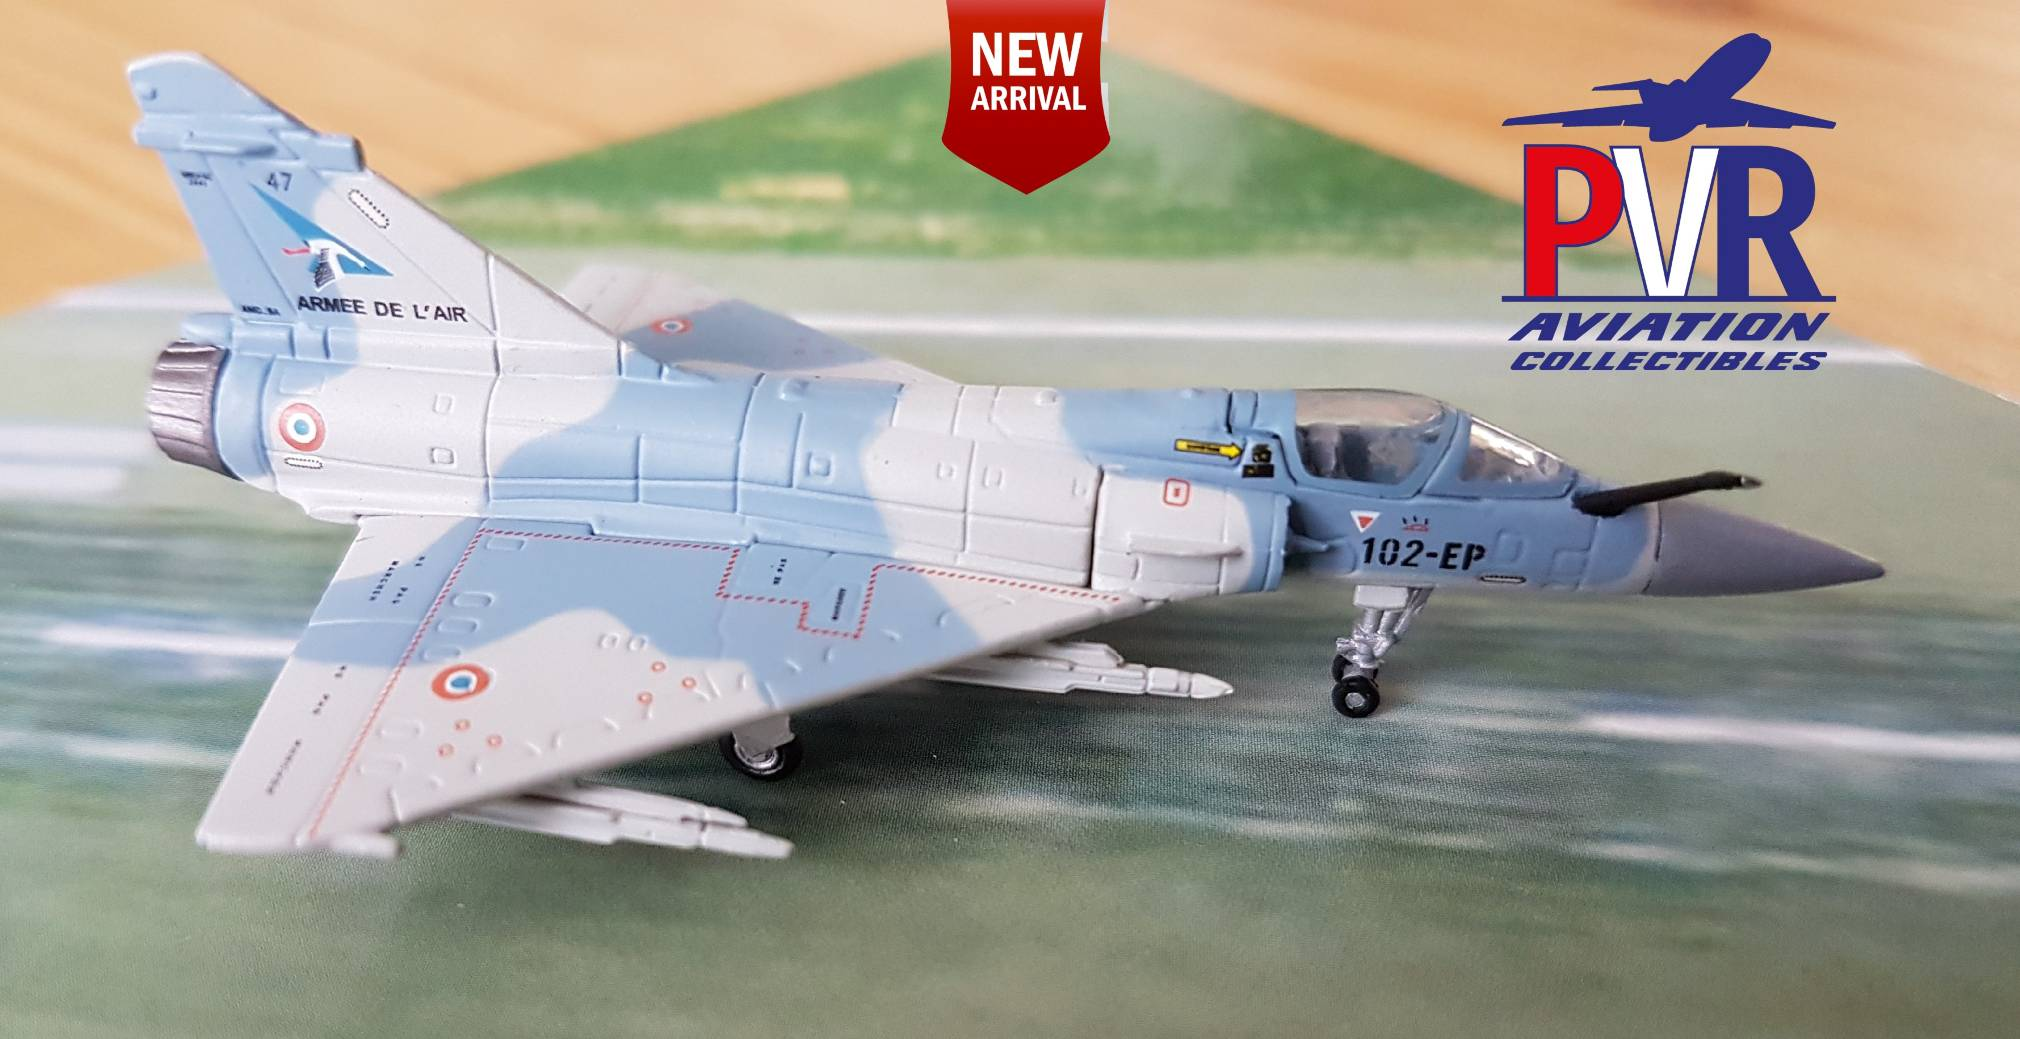 Herpa 1:200 French Air Force Dassault Mirage 2000-5F